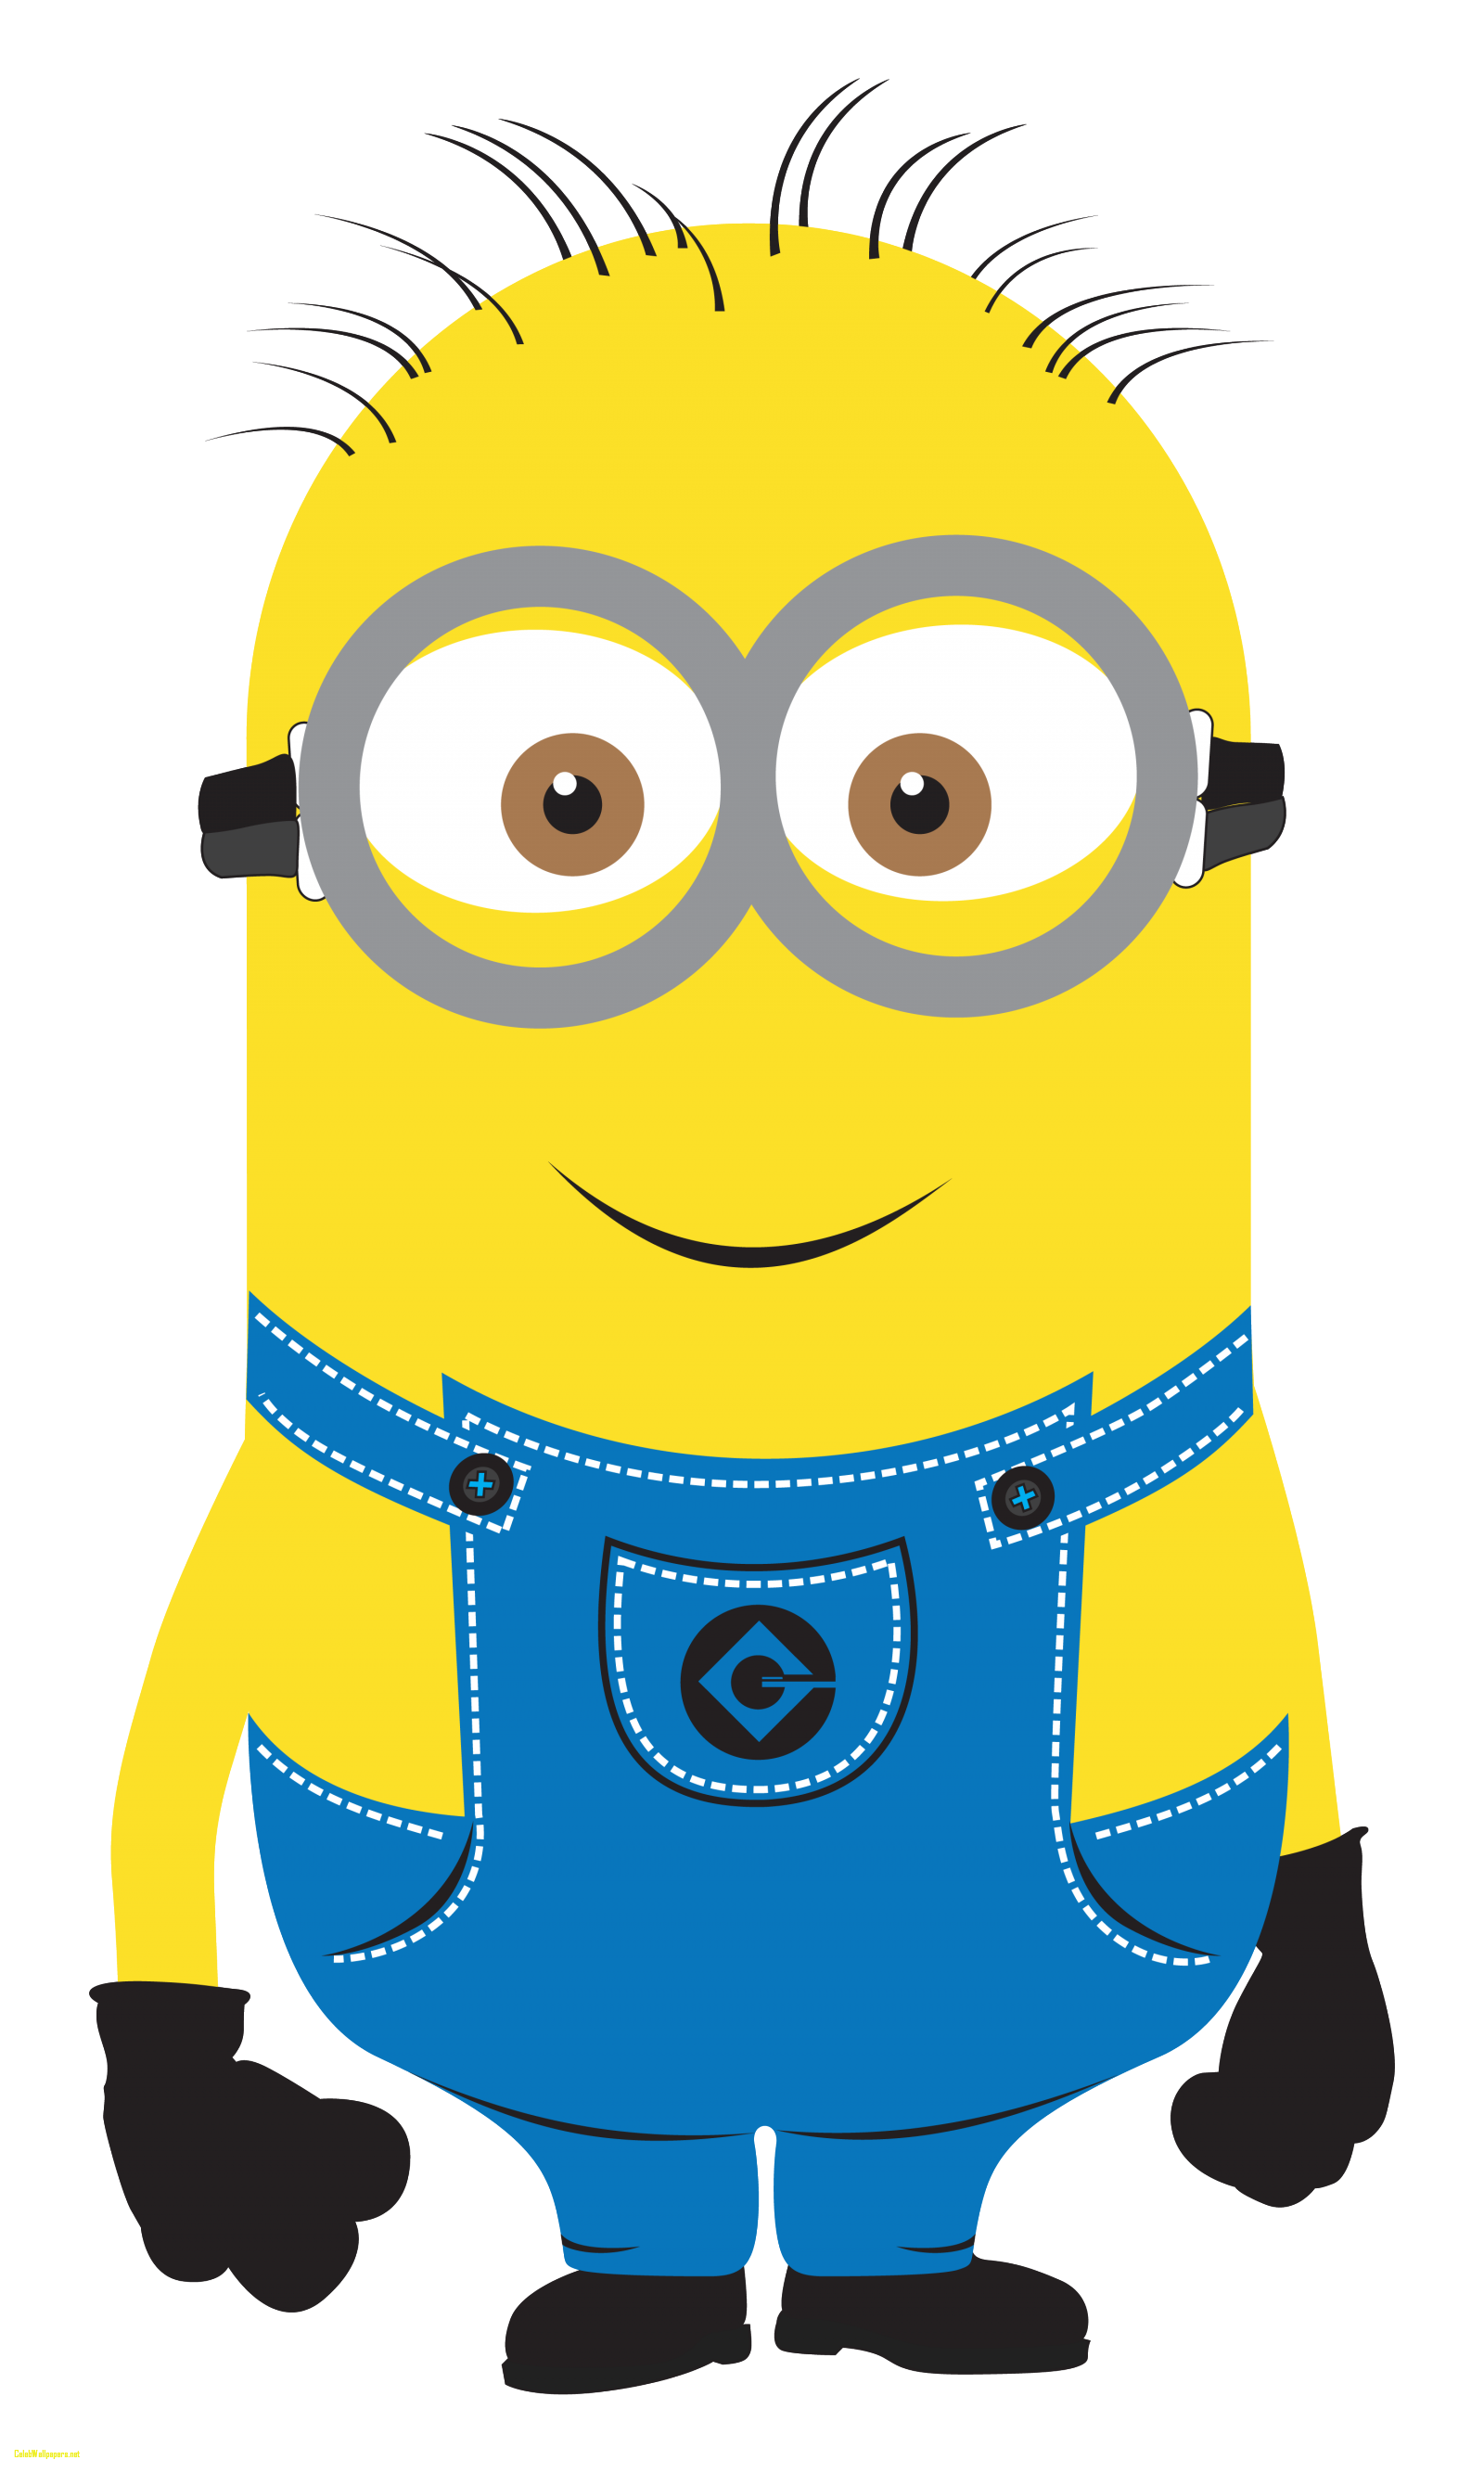 14 cliparts for free. Download Minion clipart and use in.